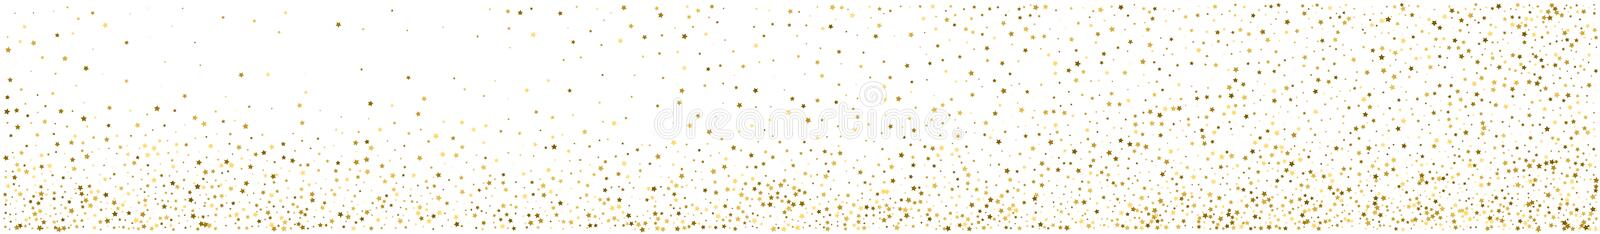 Panoramic abstract background. Gold star confetti. Gold star confetti. Panoramic abstract white and gold background. Horizontal view for a glass panels - skinali stock illustration